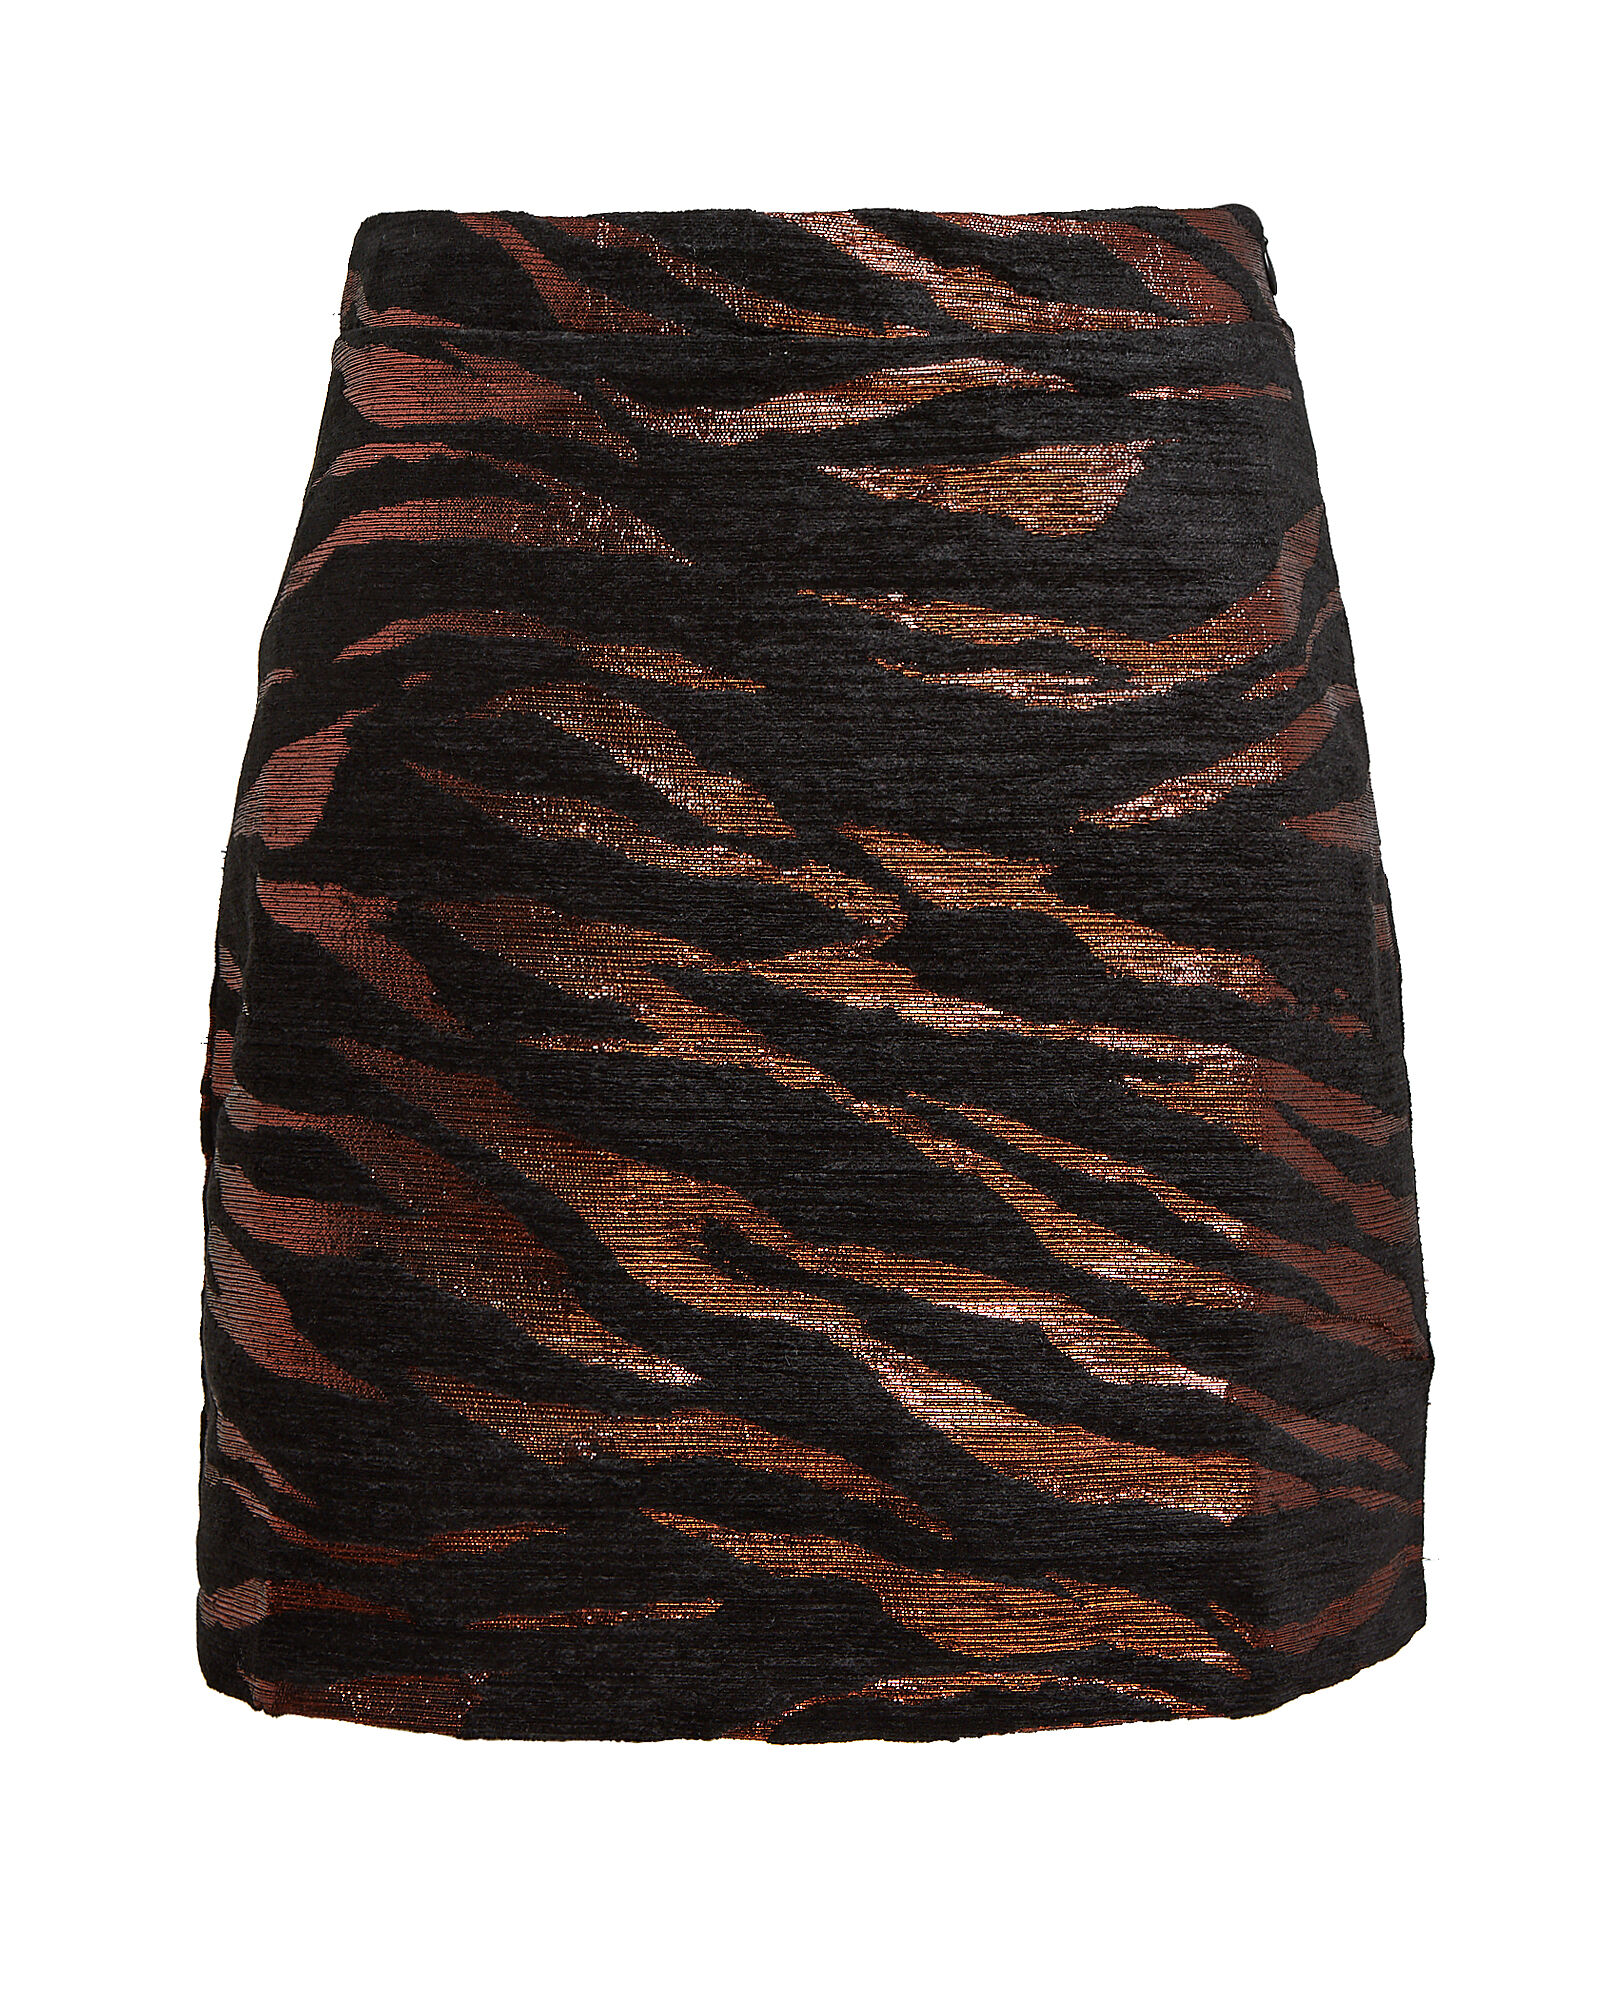 Bertha Zebra Jacquard Mini Skirt, MULTI, hi-res